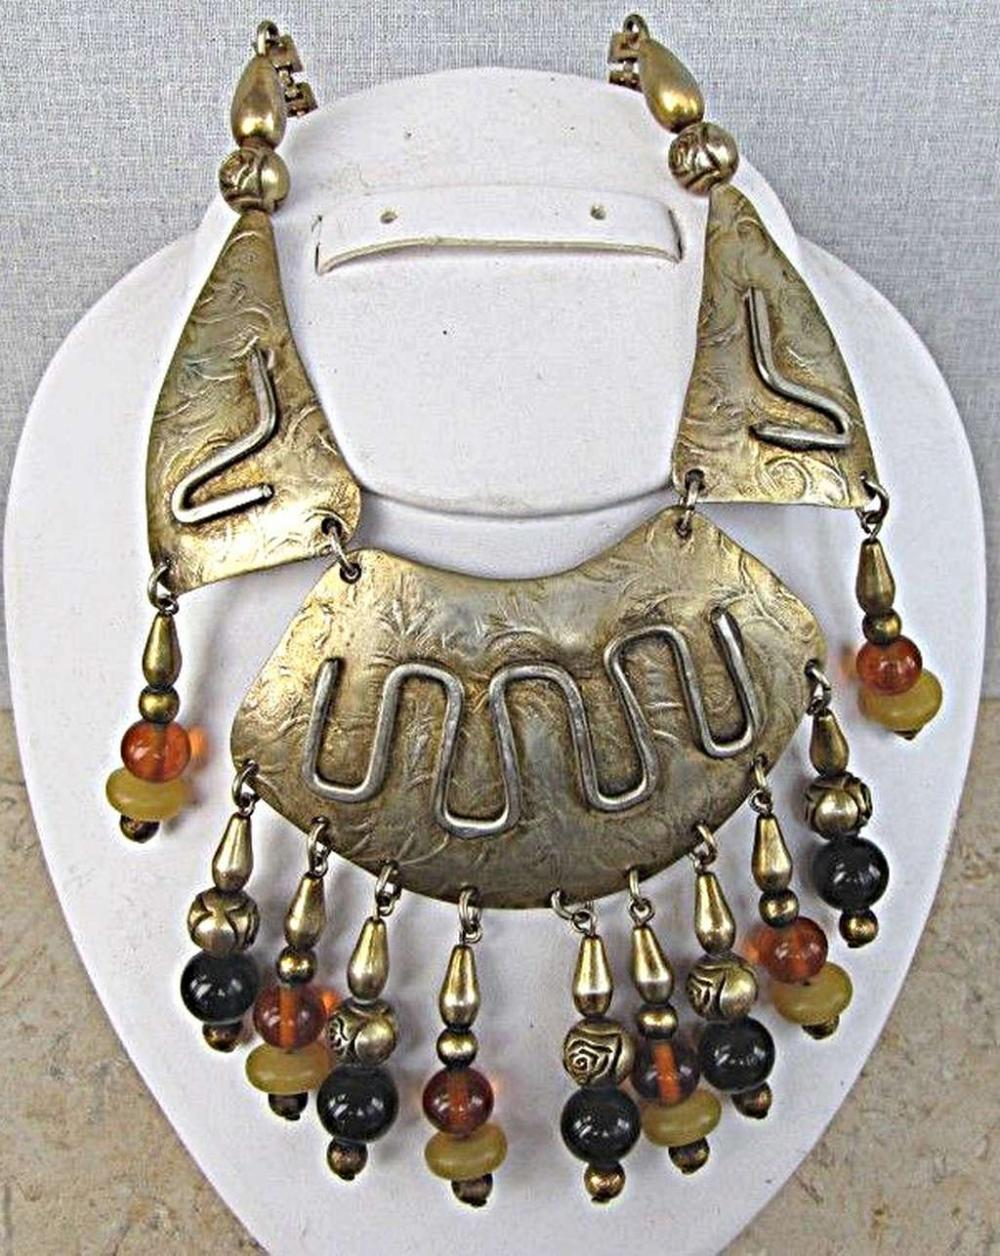 LILLO Vintage modernist gilt brass necklace with amber and agate charms, signed.